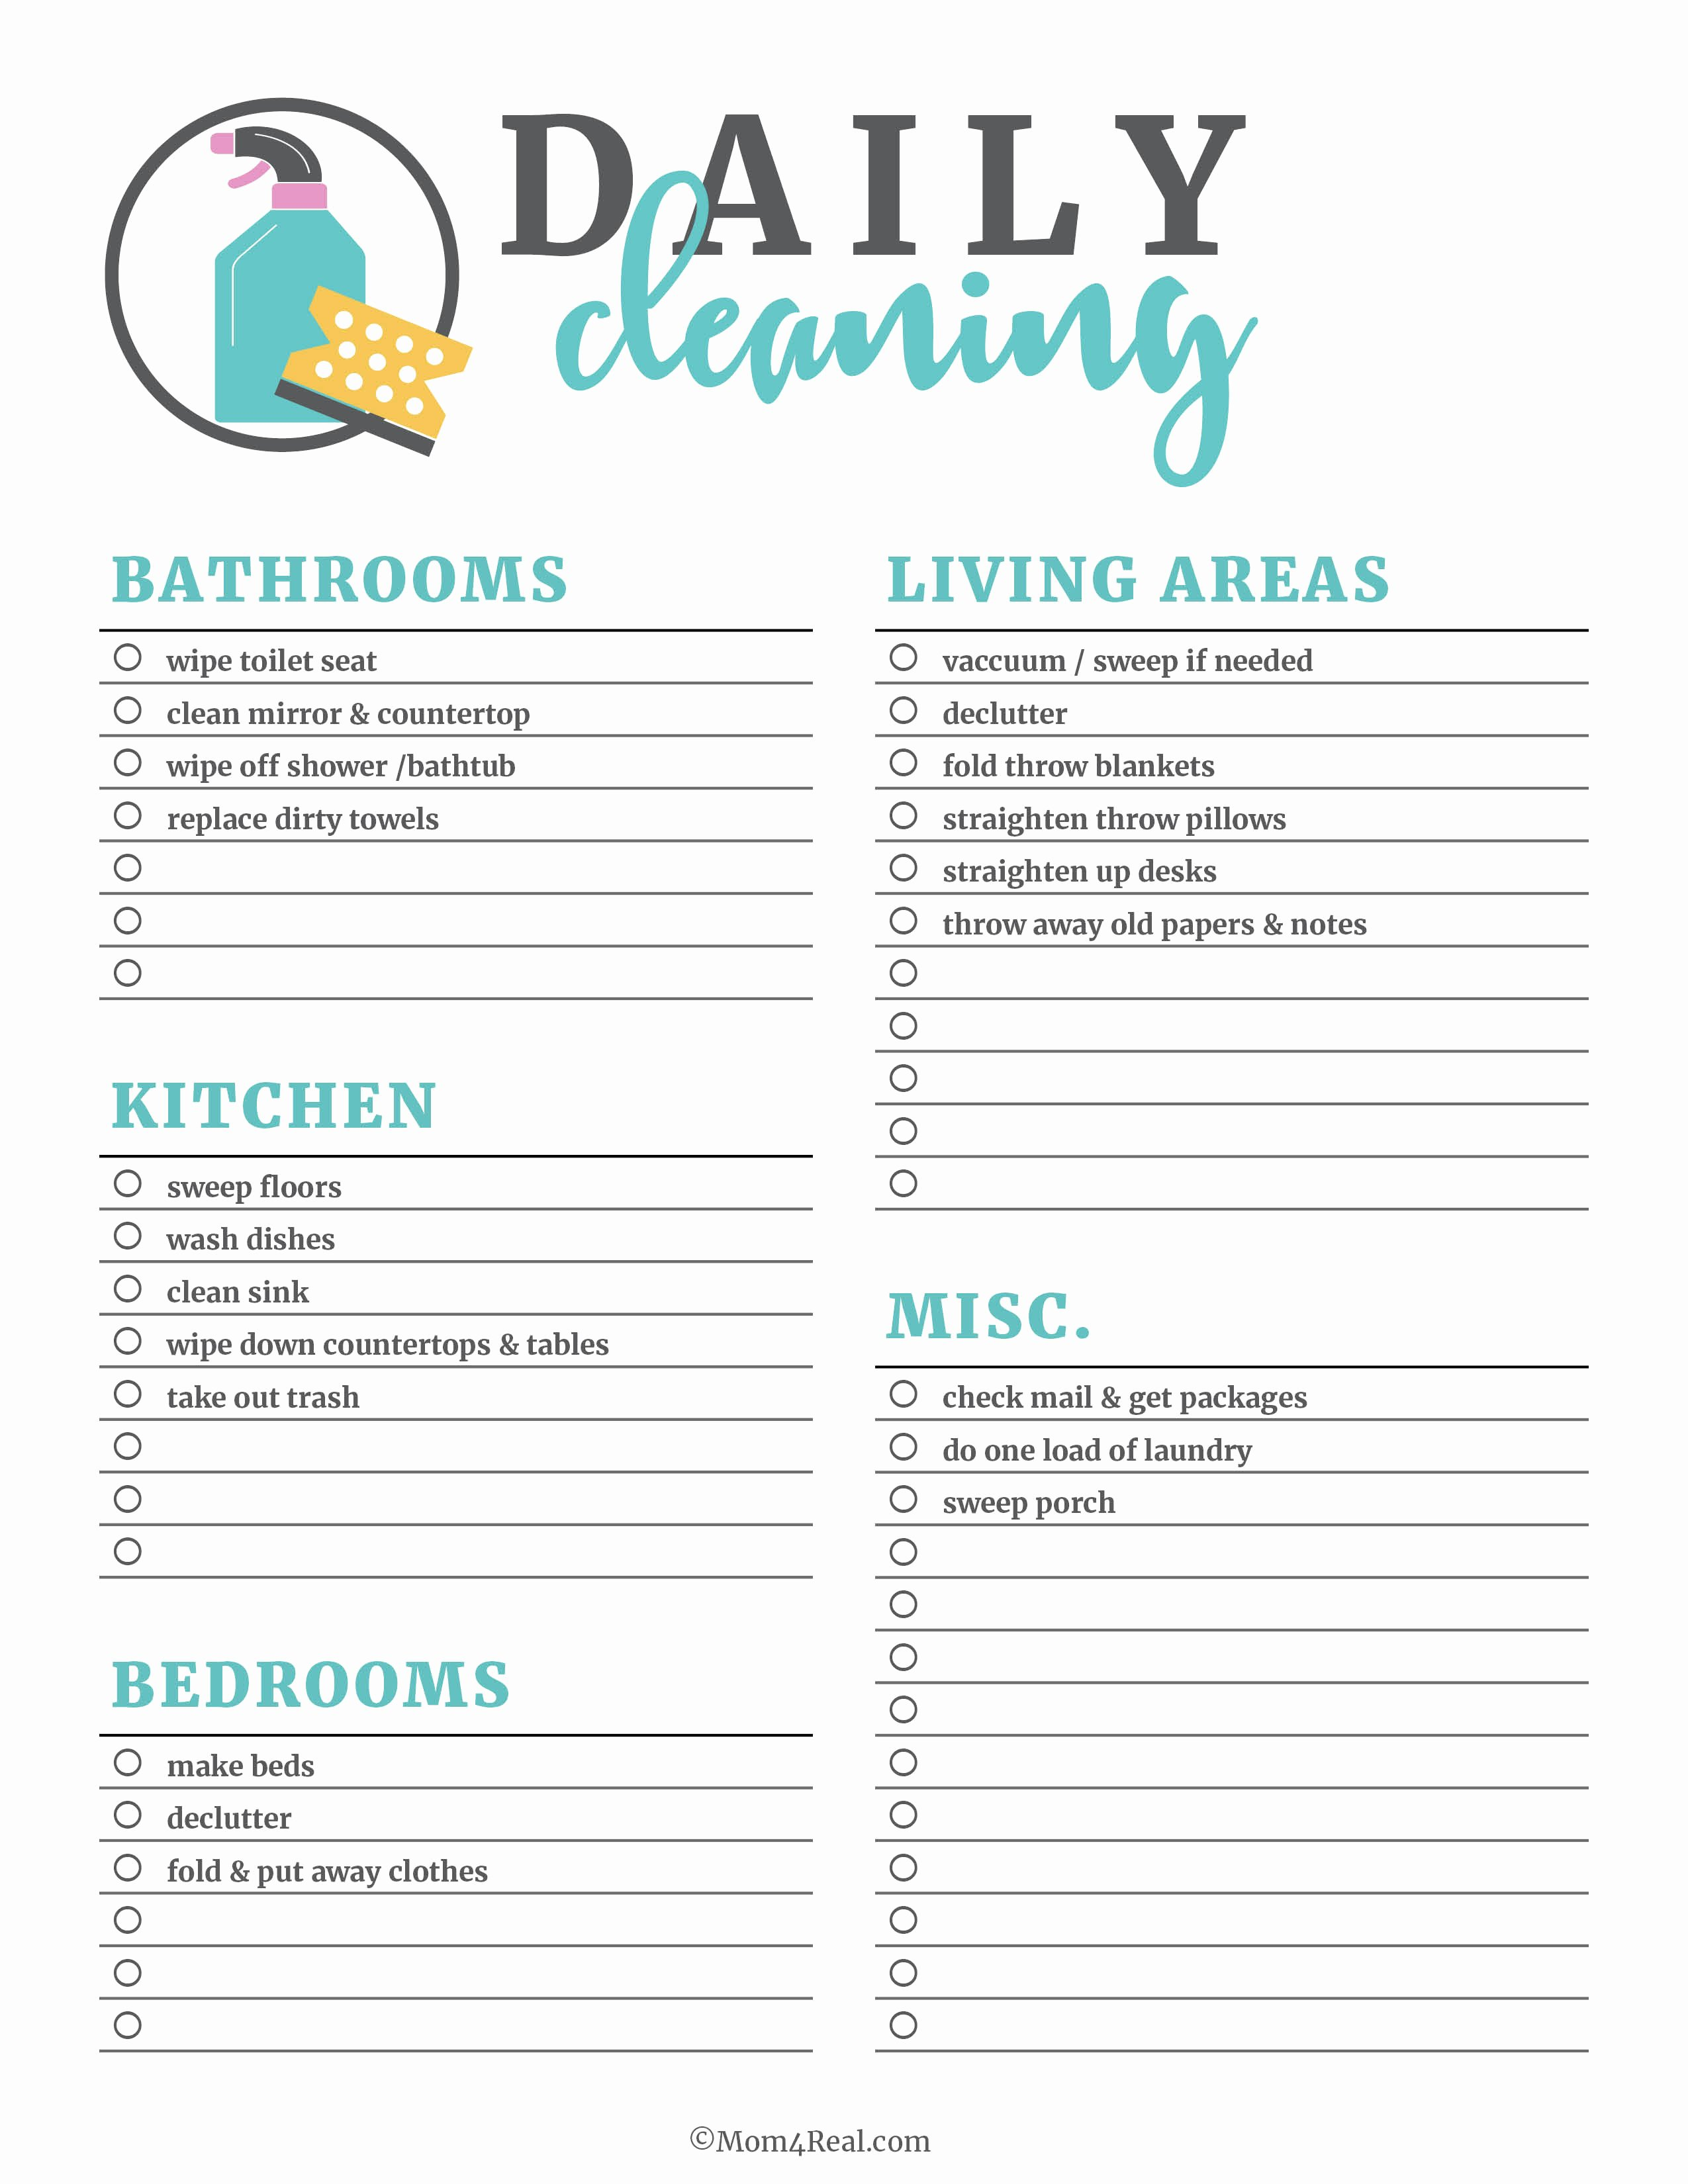 House Cleaning Schedule Template Unique Printable Cleaning Checklists for Daily Weekly and